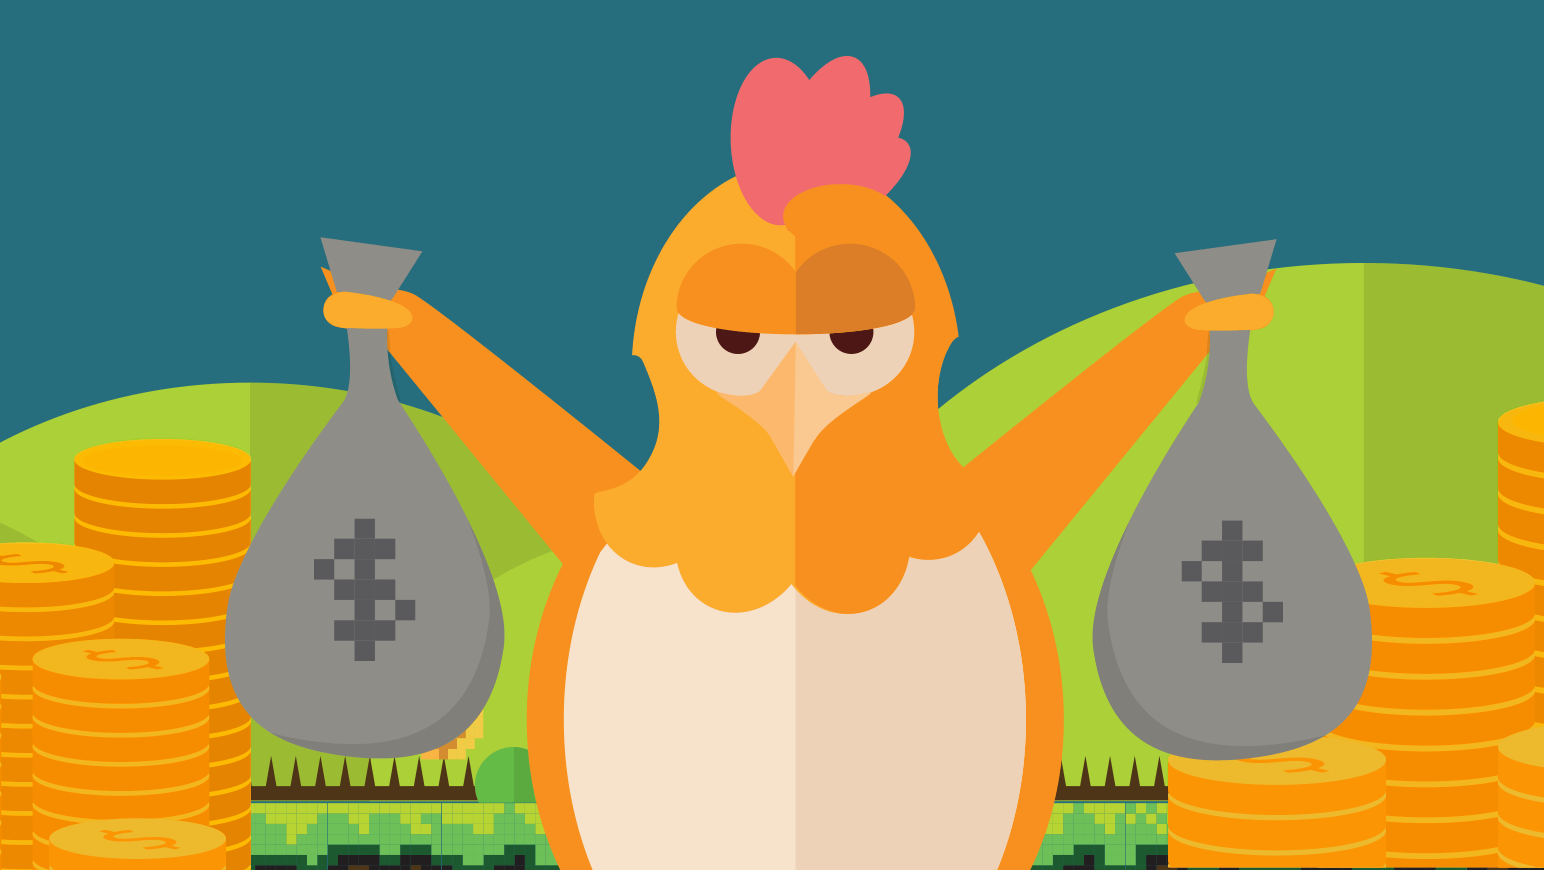 The Namecheap chick now holds two bags of money, showing how revenues for WordPress grew rapidly.